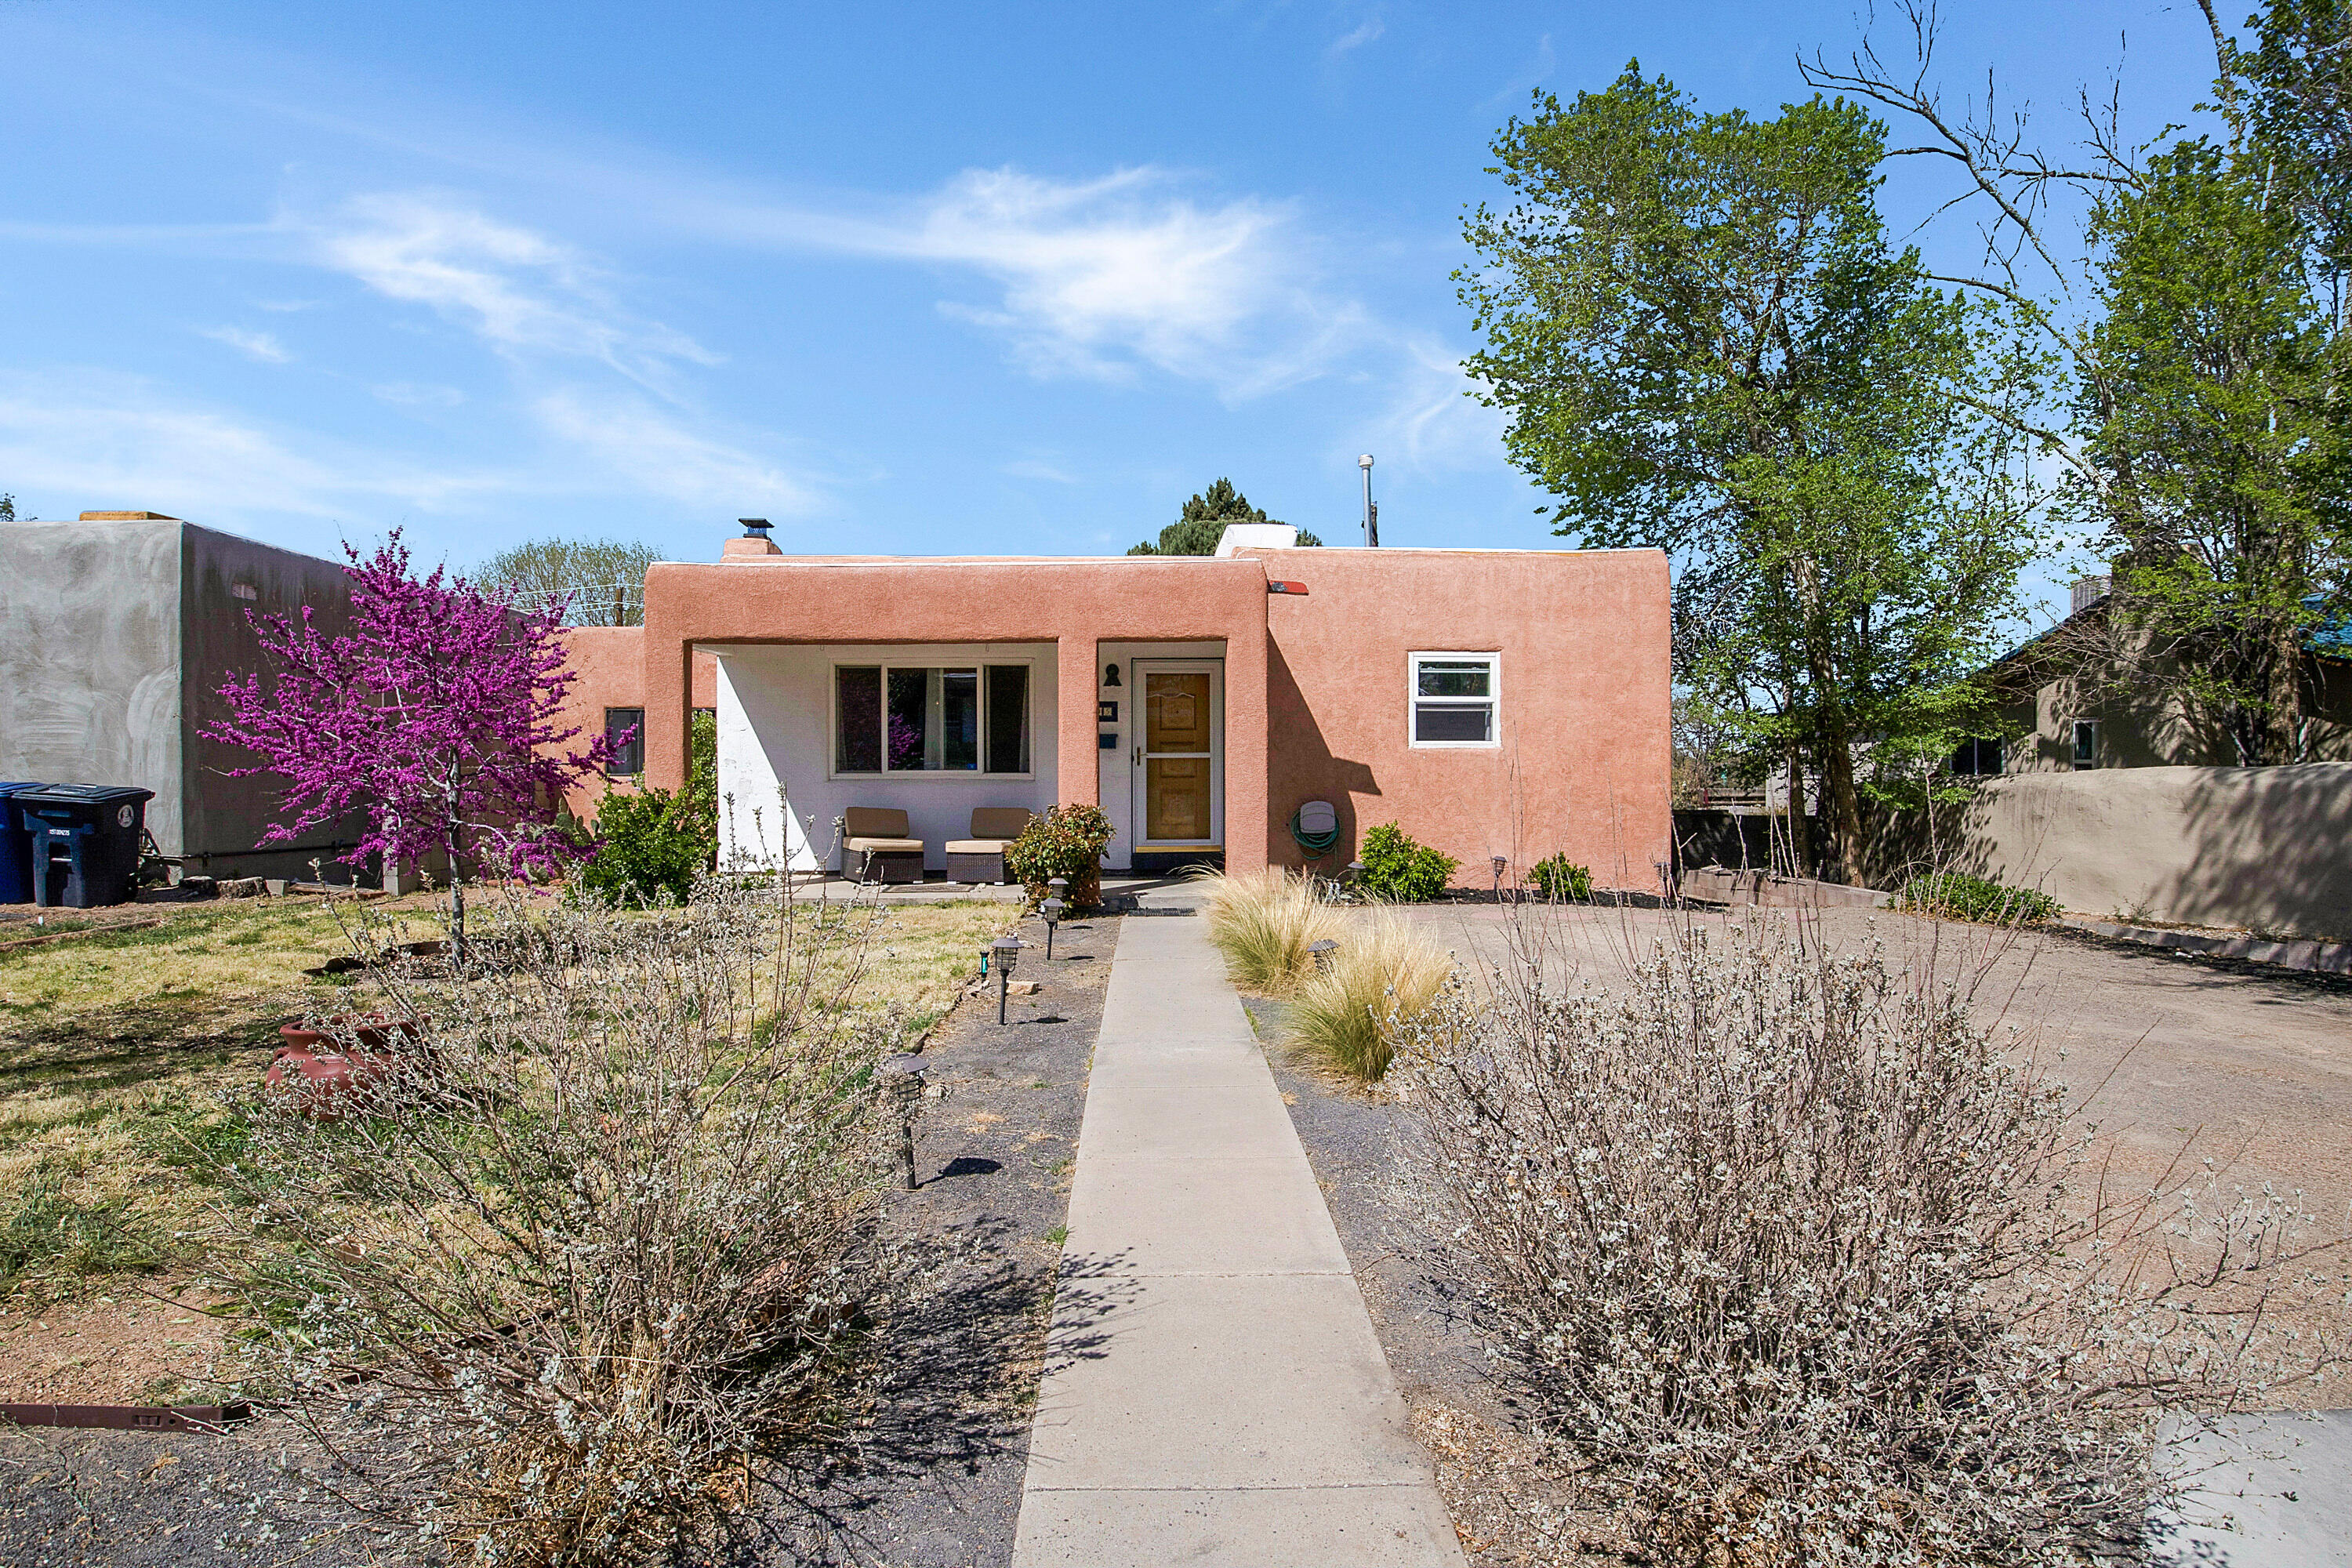 Come see this Charming UNM home it has Quartz Counters, 12'' x 24'' Porcelain Tile, Stainless Appliances, Rich Hardwood Floors, Ceiling Fans, Roof Replaced 2019, Vinyl Thermal Windows. All this and Close to UNM, Hyder Park, Hospitals, Airport and Sports Facilities! Home has stand up crawlspace and Private Backyard!